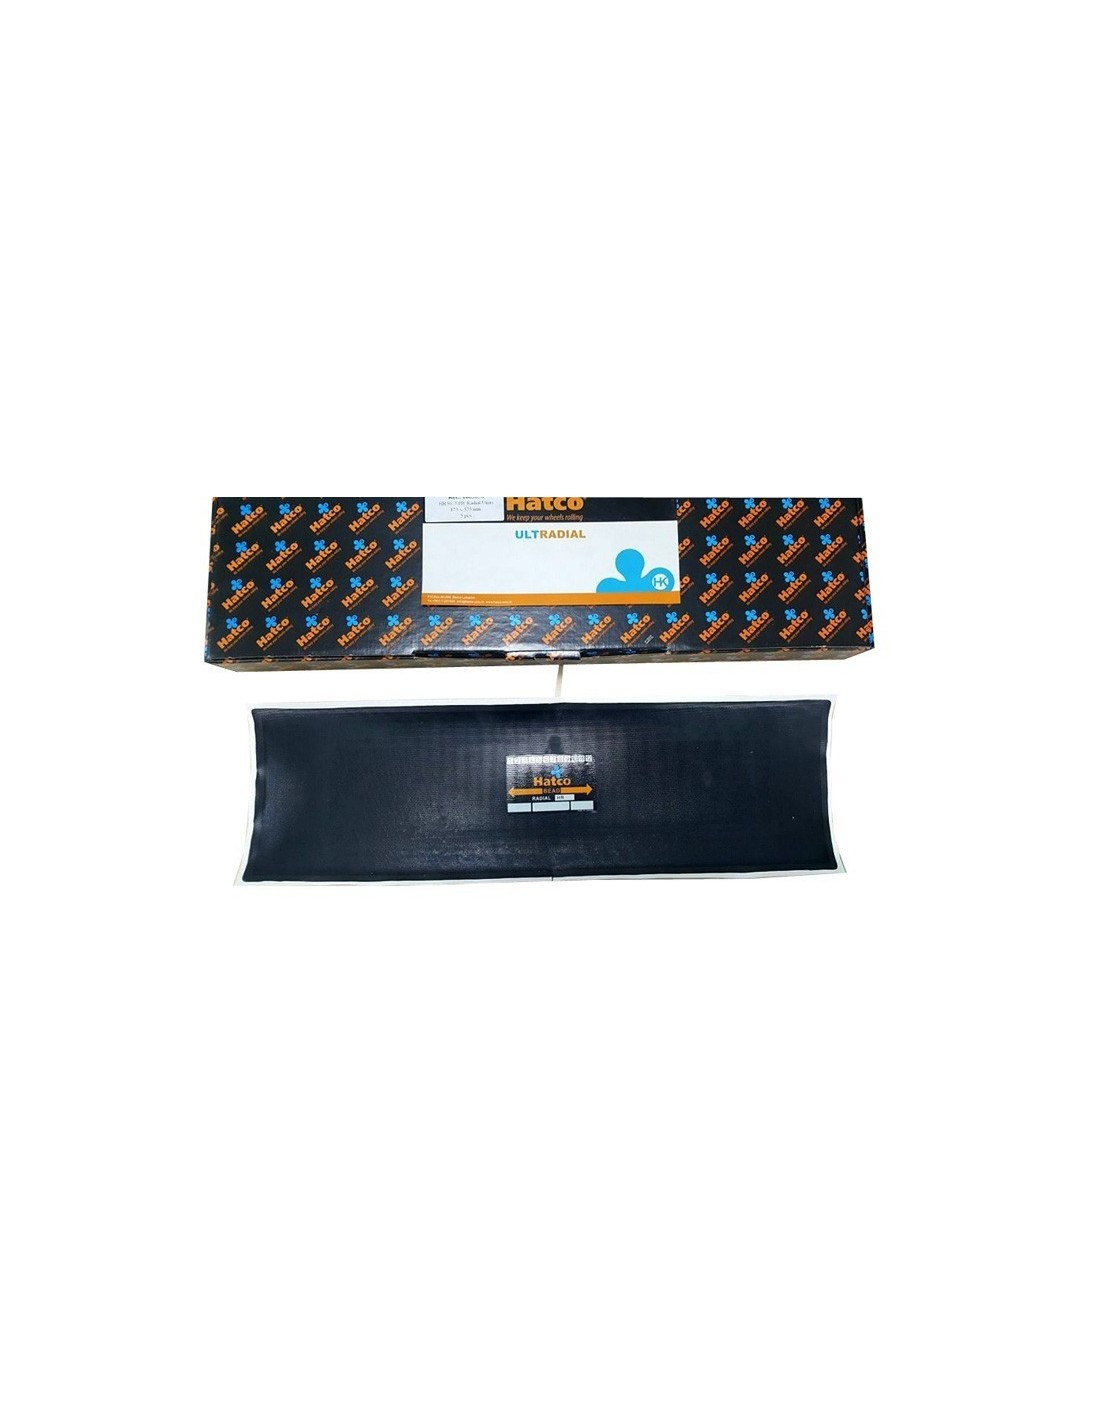 Parches radiales neumáticos tubeless 225x575 mm HR52